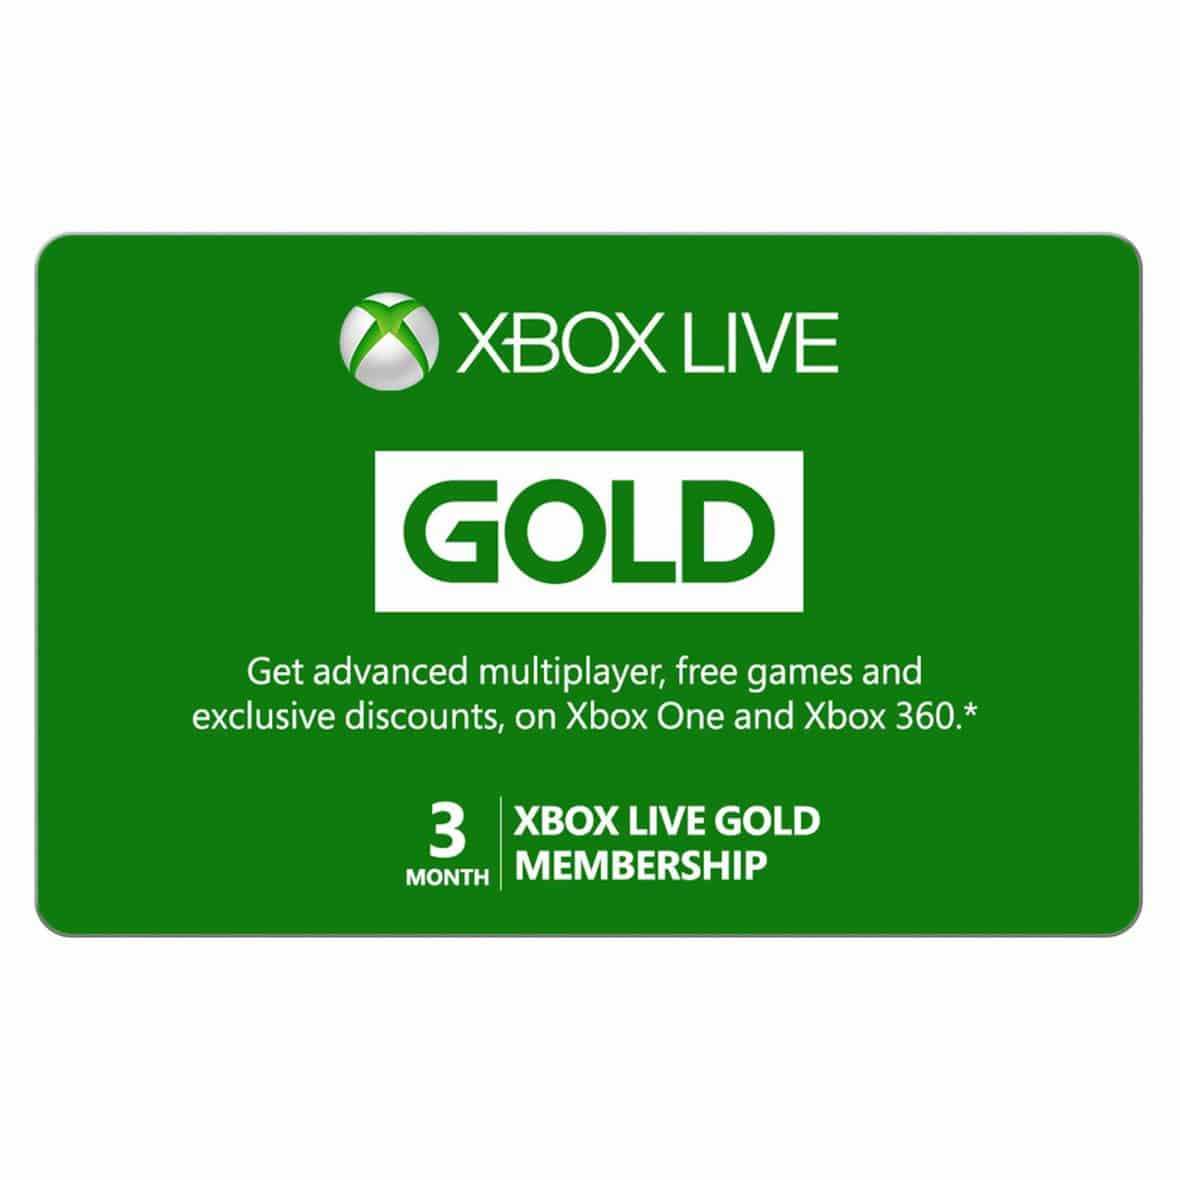 Xbox Live 3-Month Gold Card 40% Off, $14.99 Until 3/3